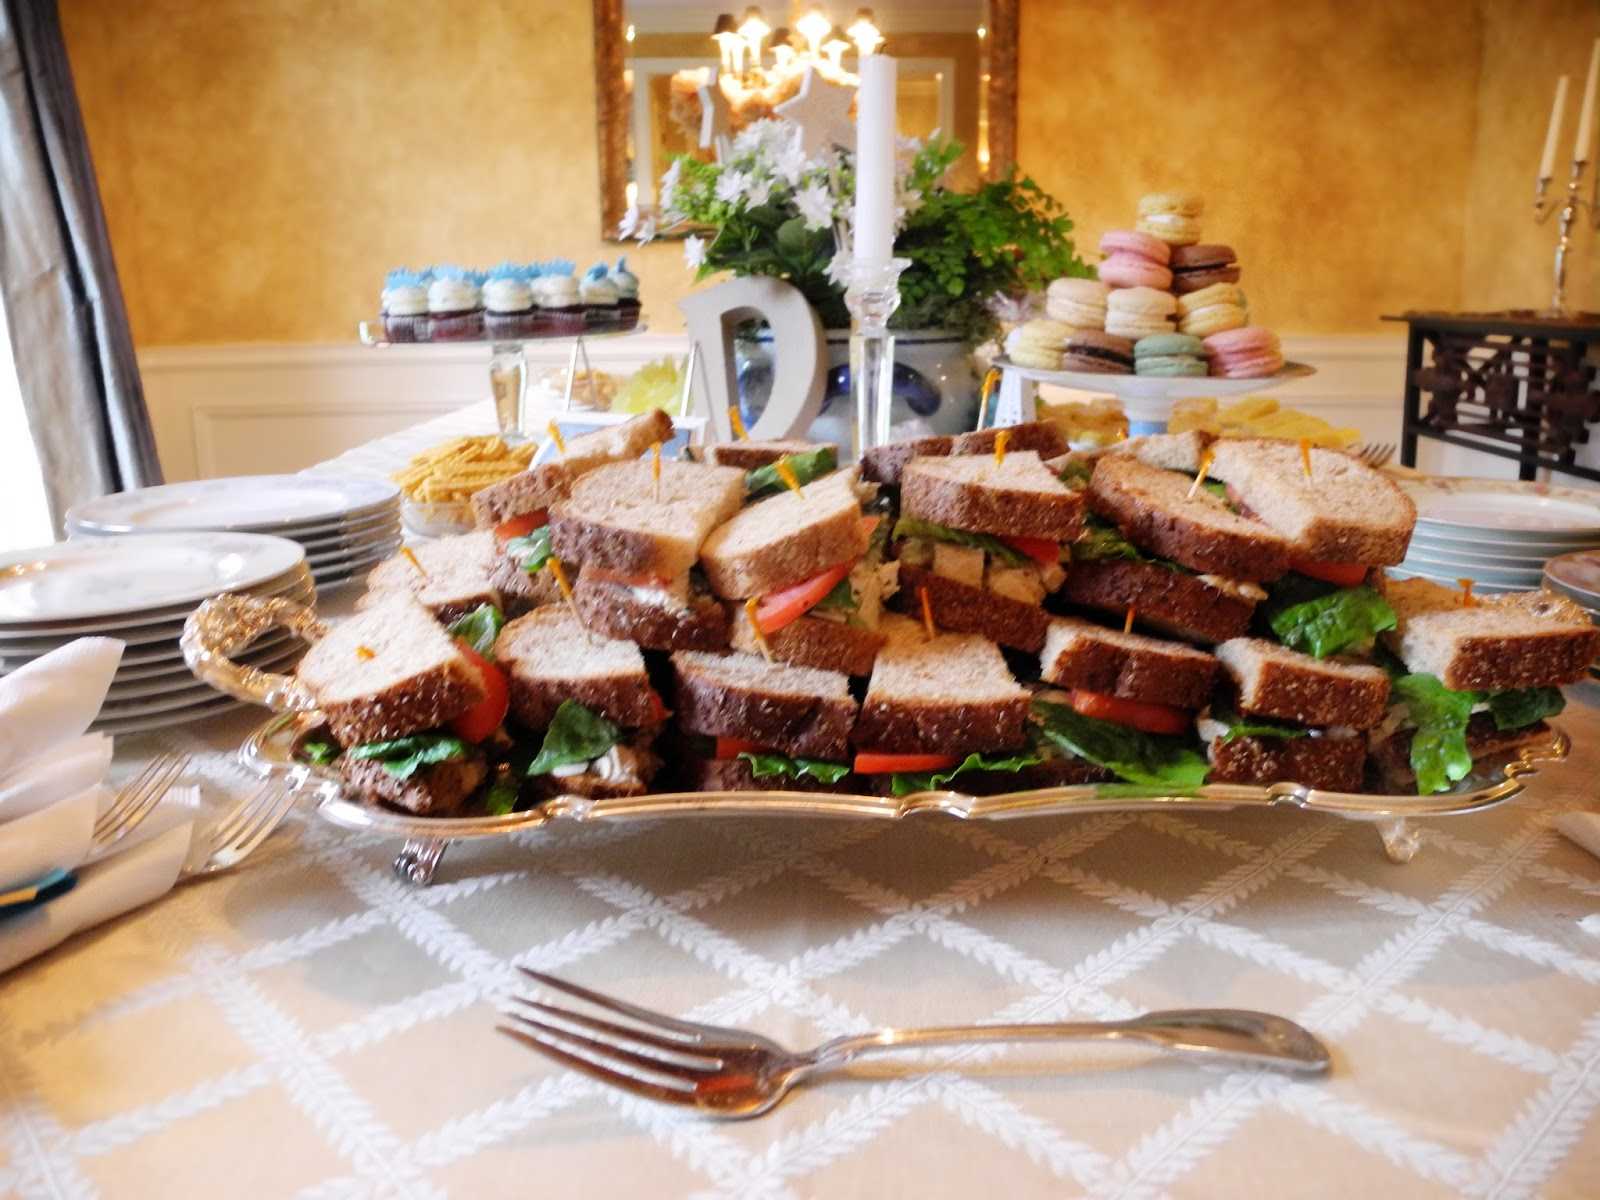 Baby Shower Food Ideas: Baby Shower Ideas For Food On A Budget